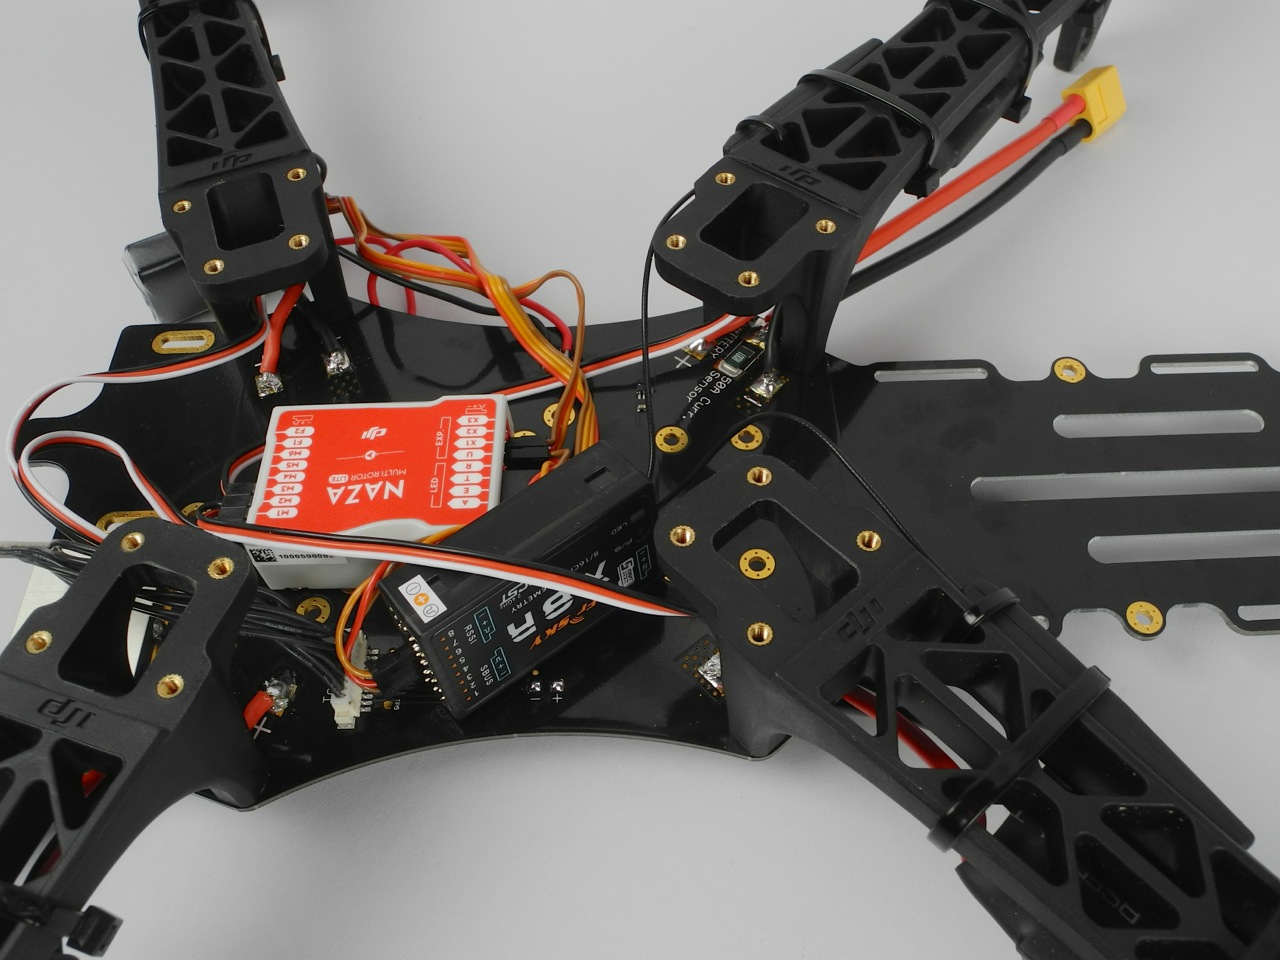 X8R placement inside the frame | FPV blog